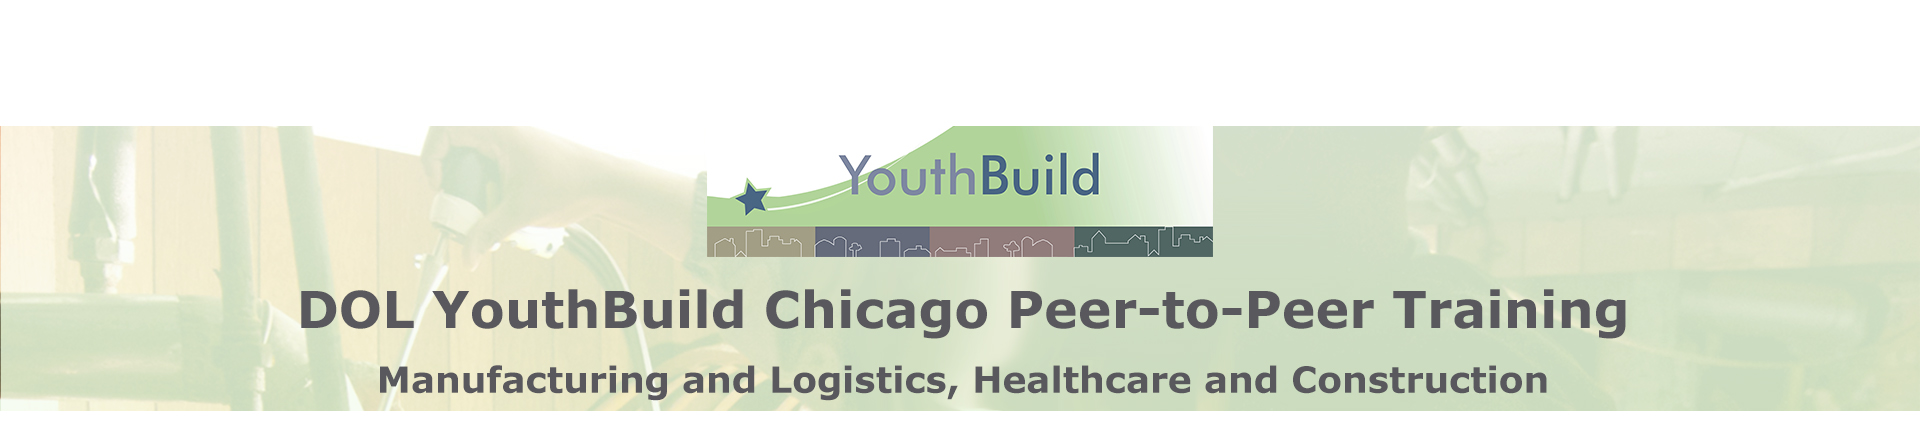 DOL YouthBuild Chicago Peer-to-Peer Training